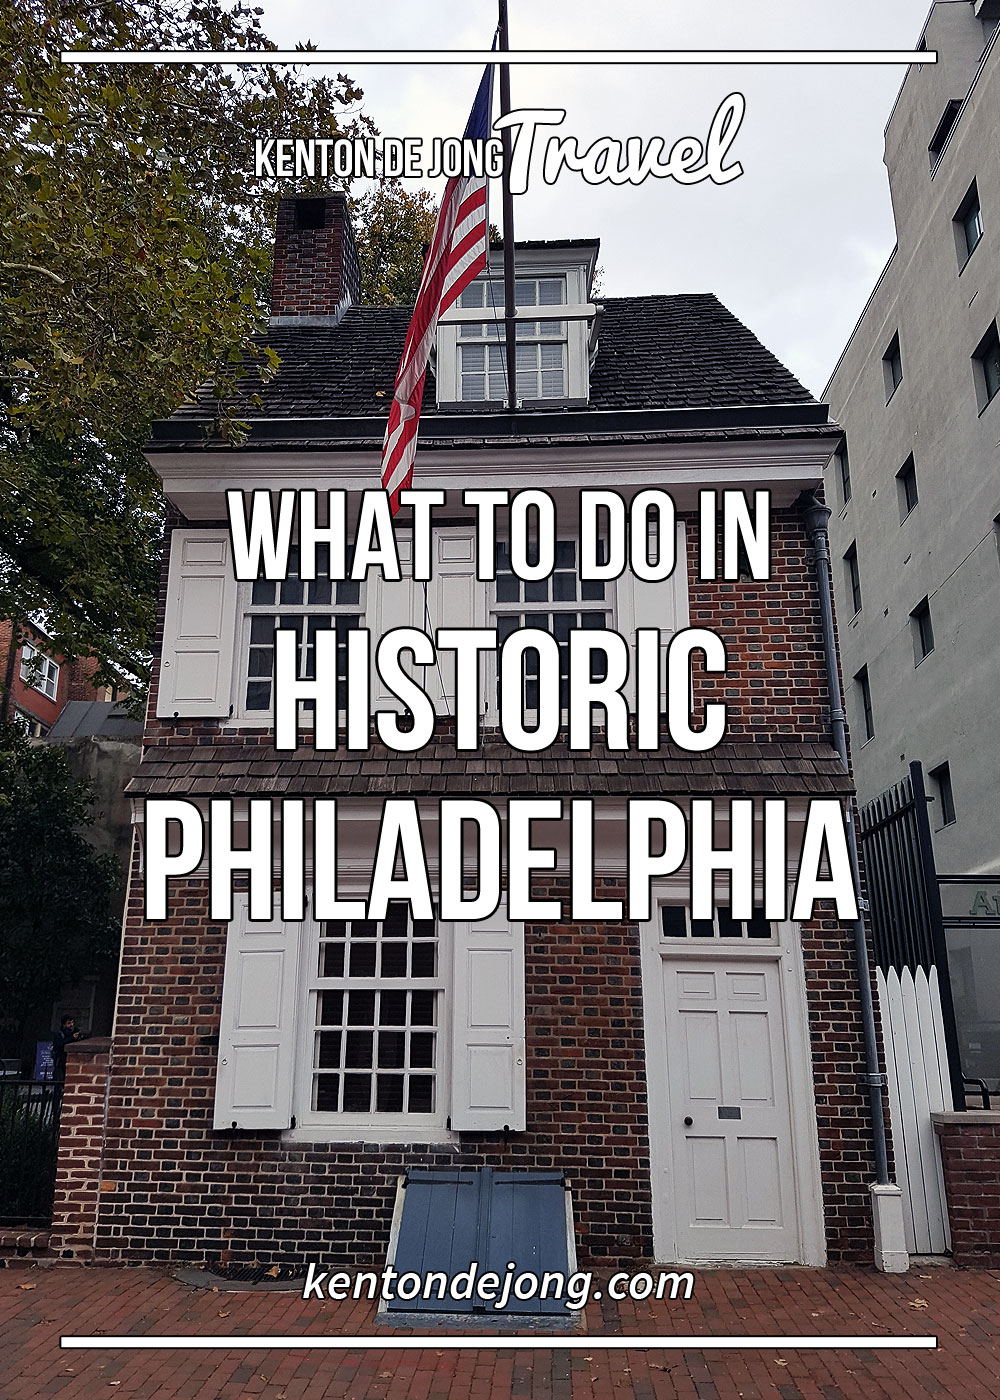 What To Do in Historic Philadelphia